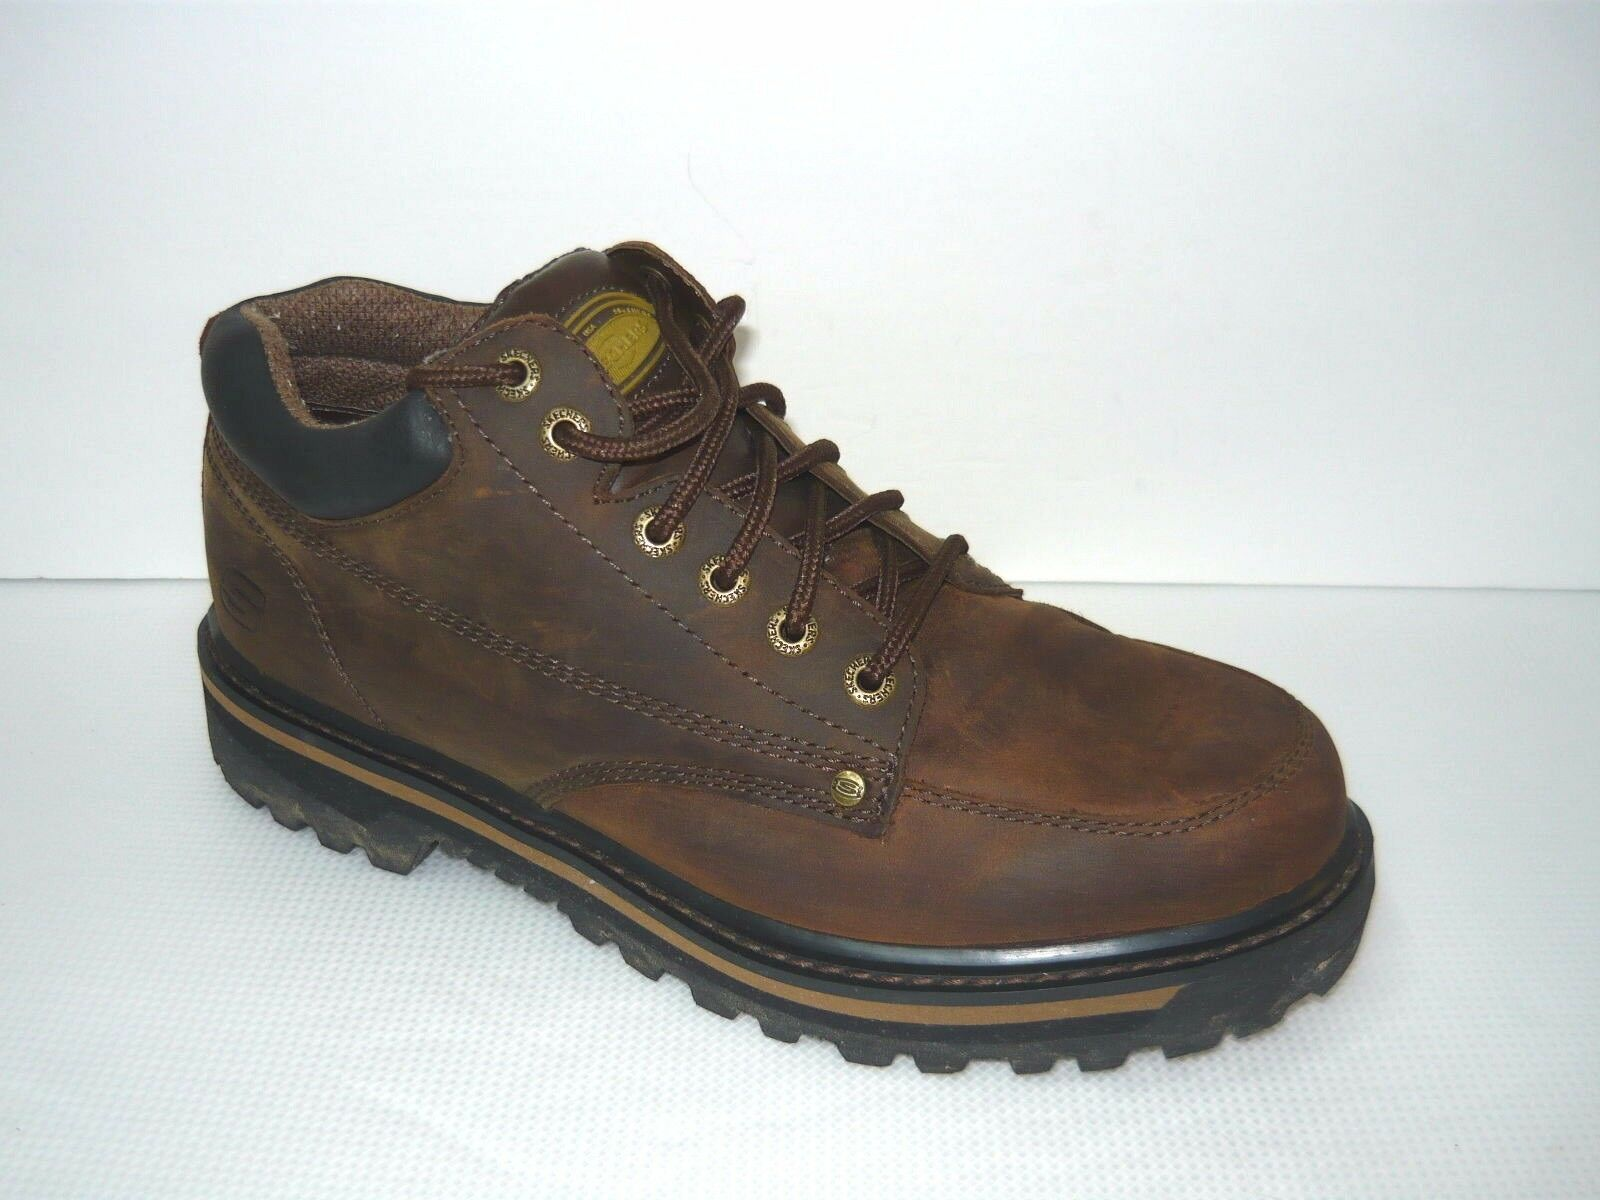 SKECHERS Distressed Brown Leather shoes Sz 12